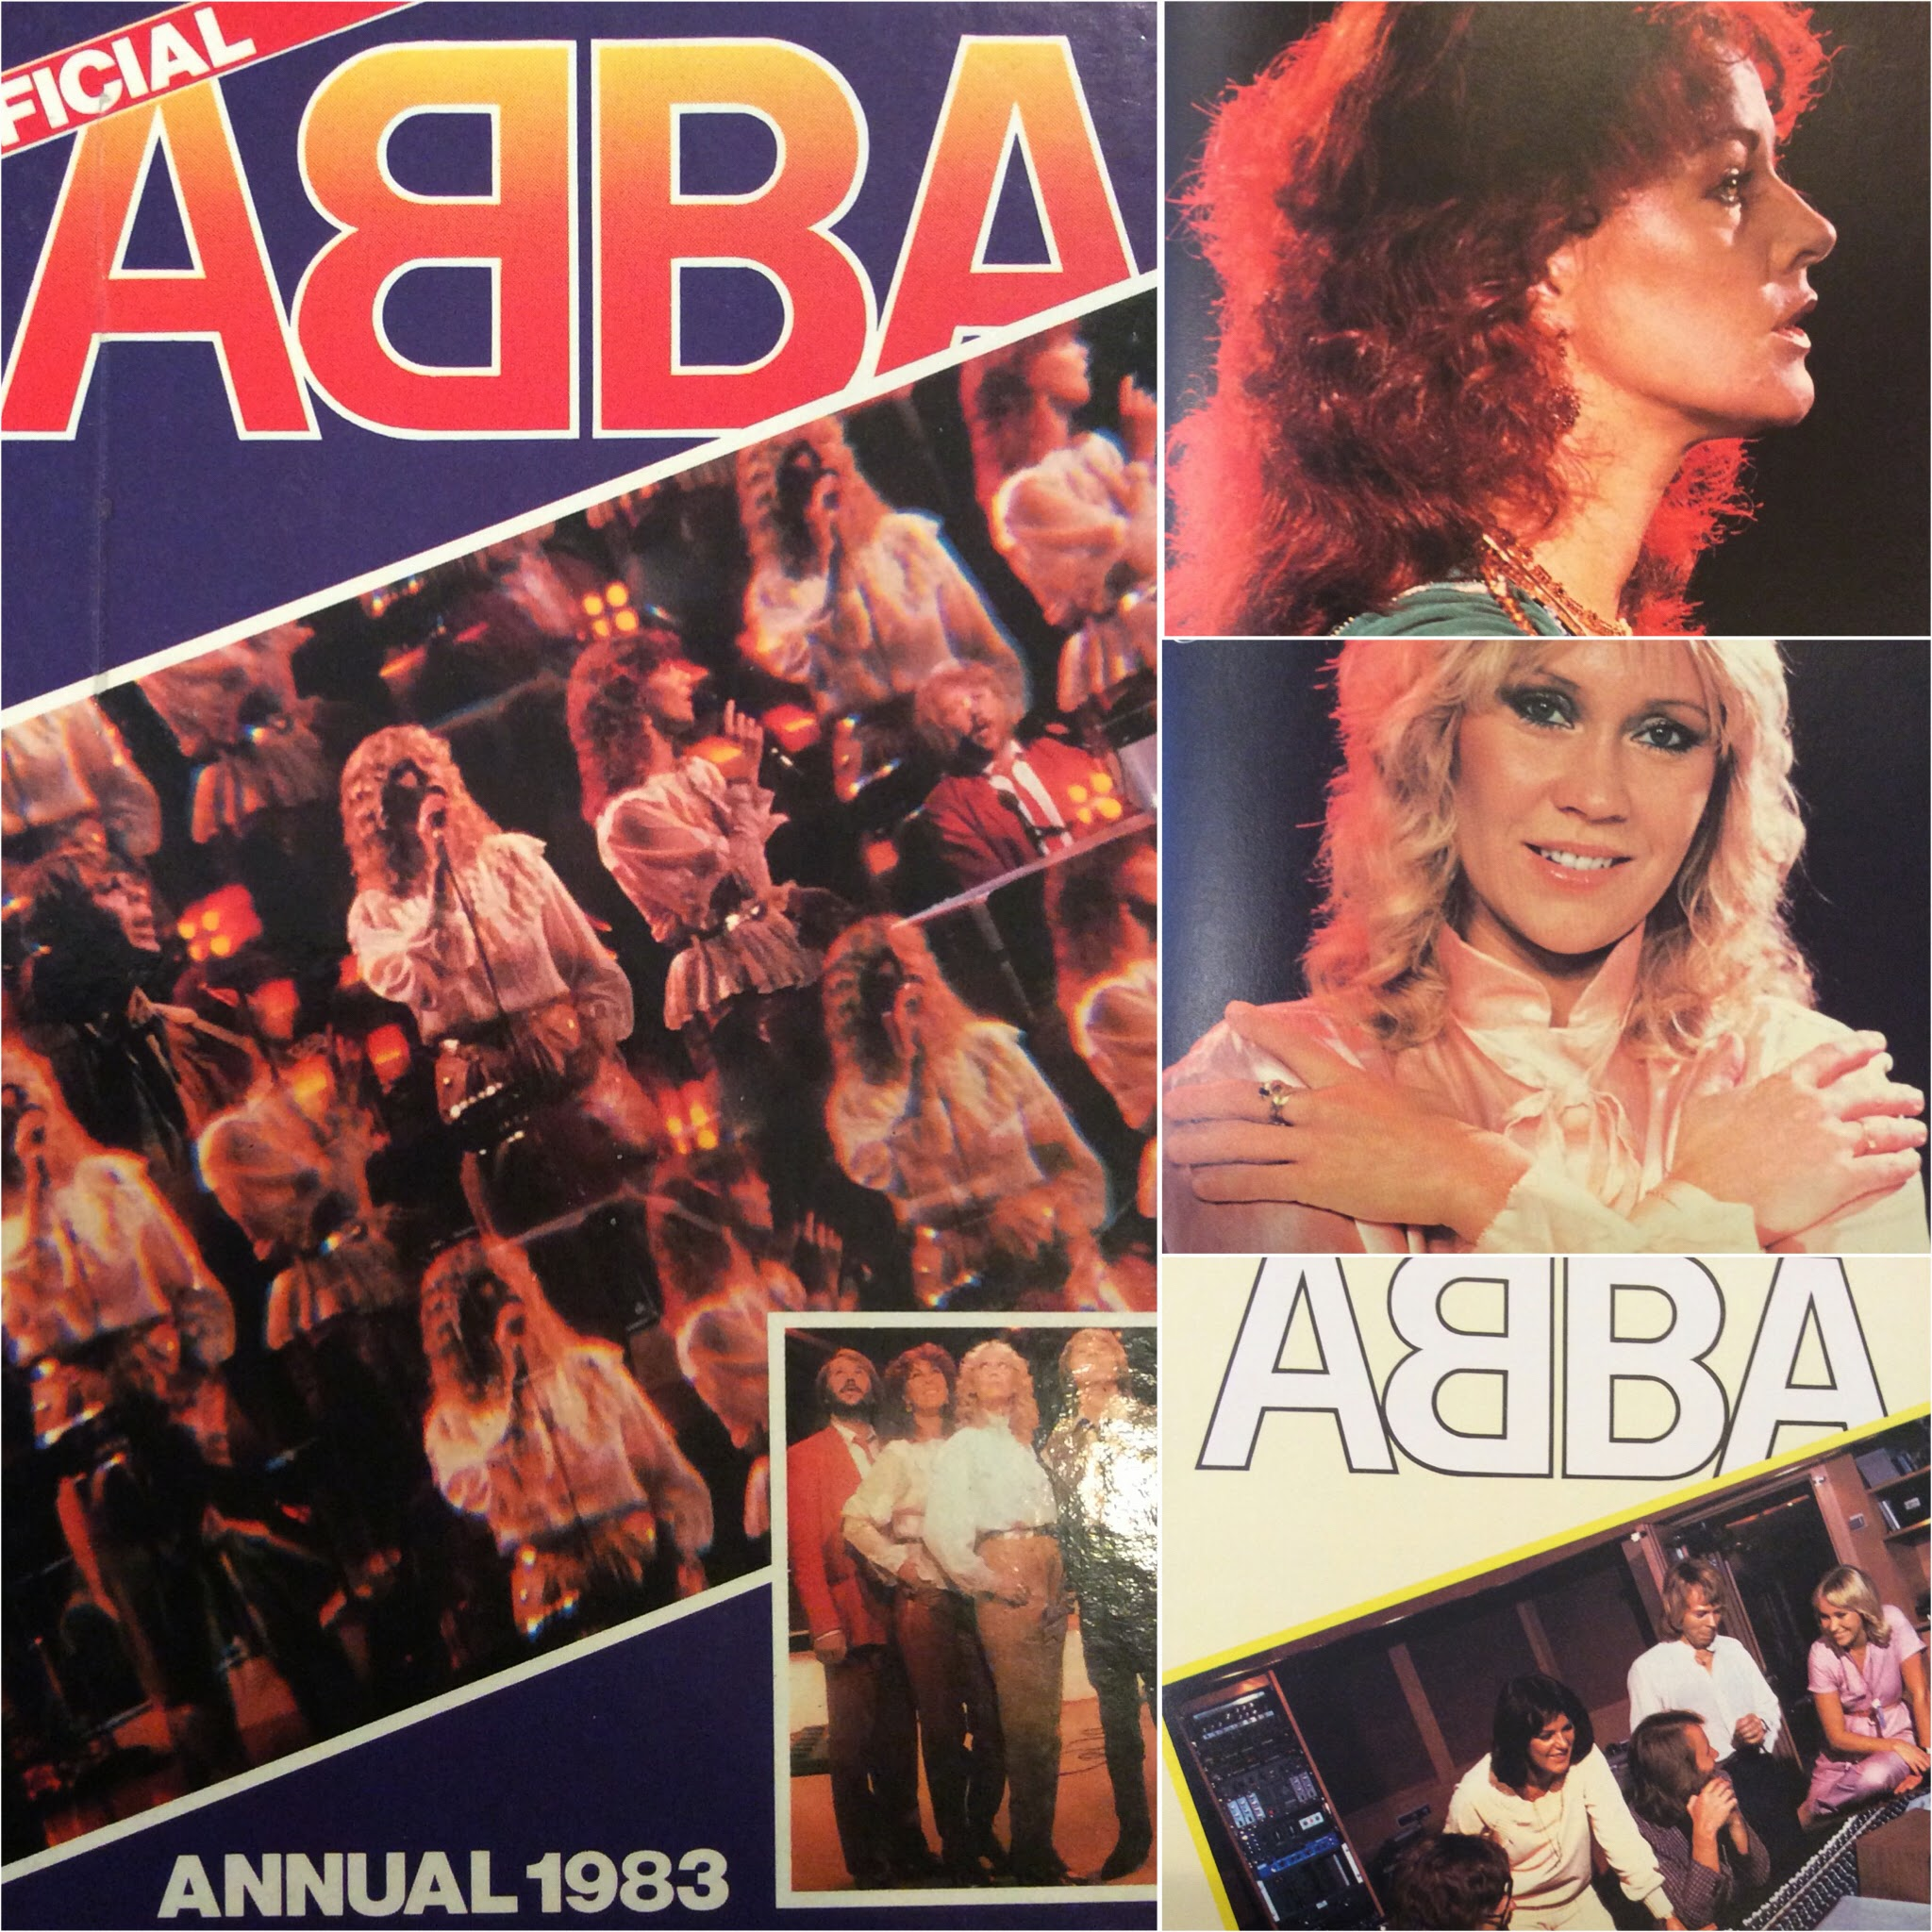 ABBA The Official ABBA Fan Club 25 Years